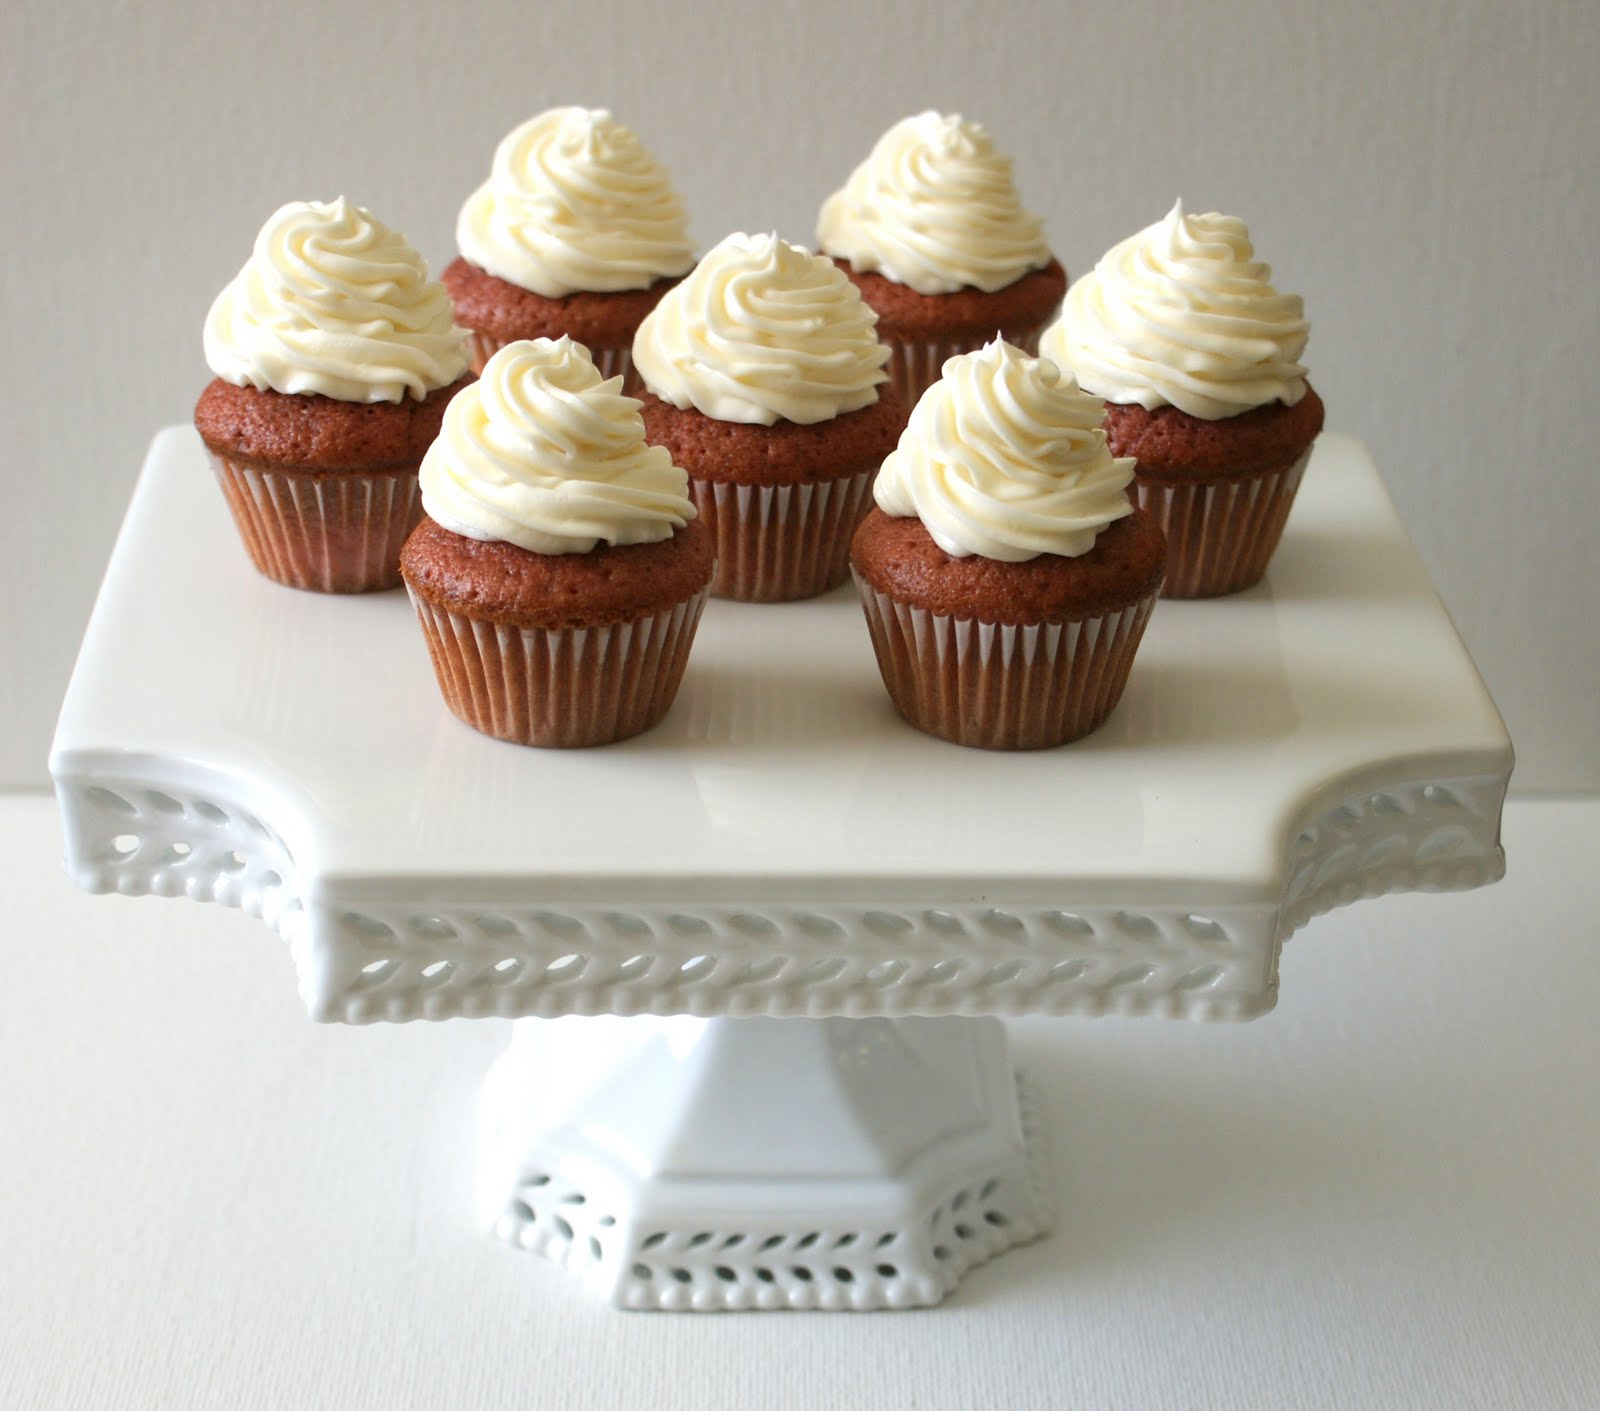 Authentic Suburban Gourmet: Mini Red Velvet Cupcakes